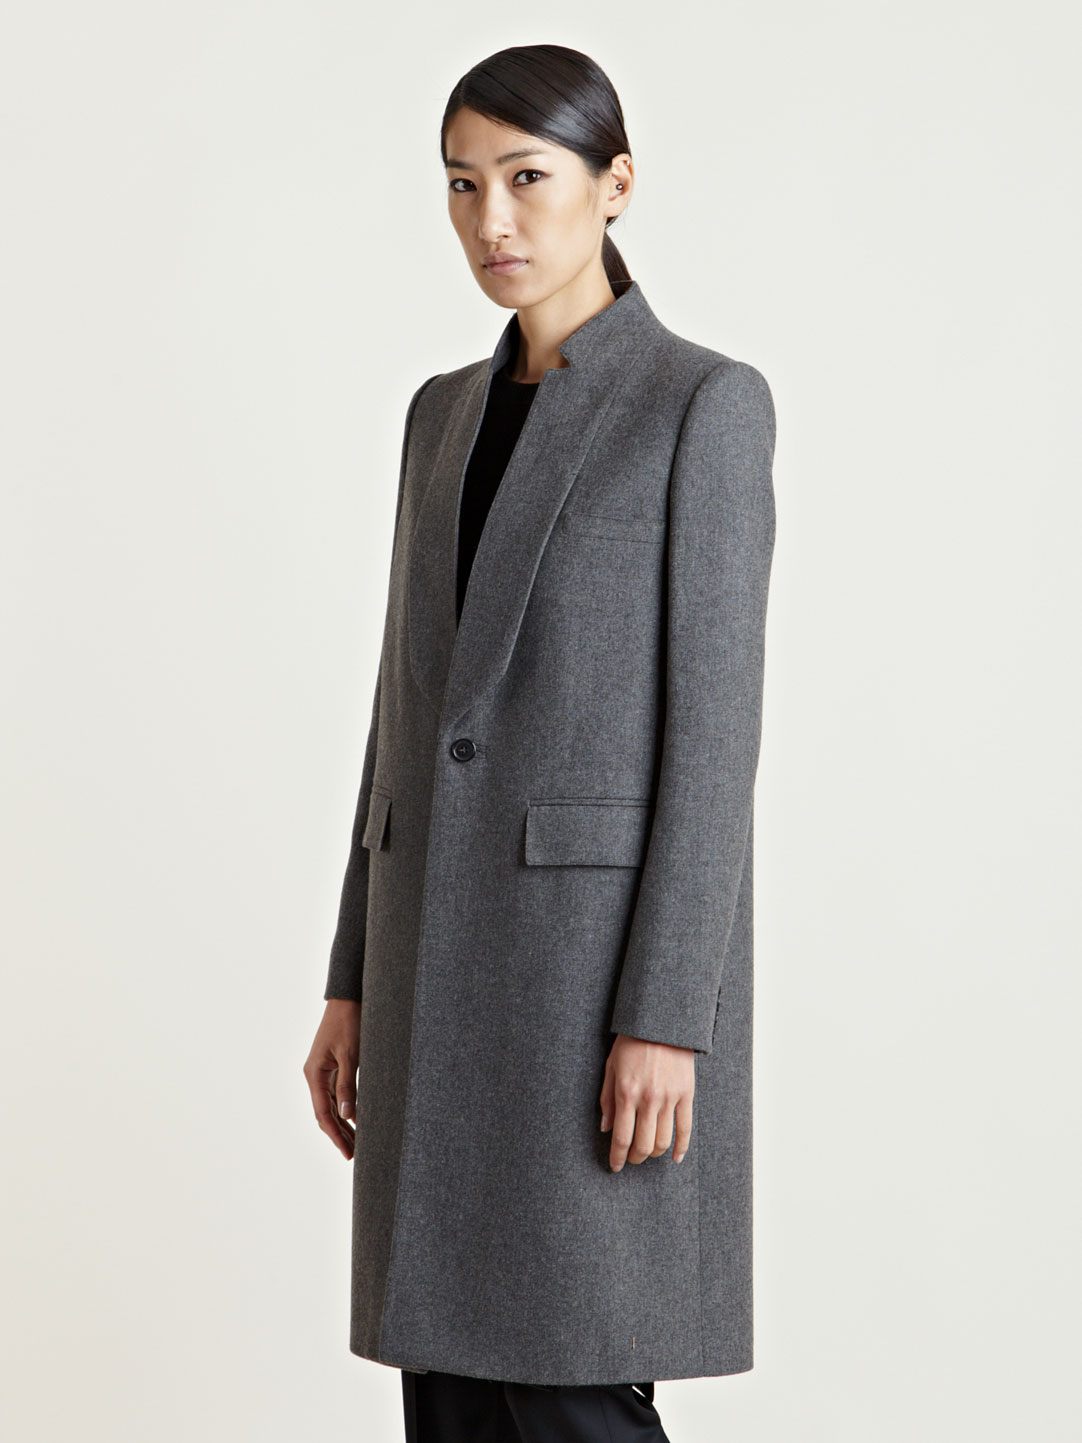 Givenchy Womens Long Wool Cashmere Coat in Gray | Lyst